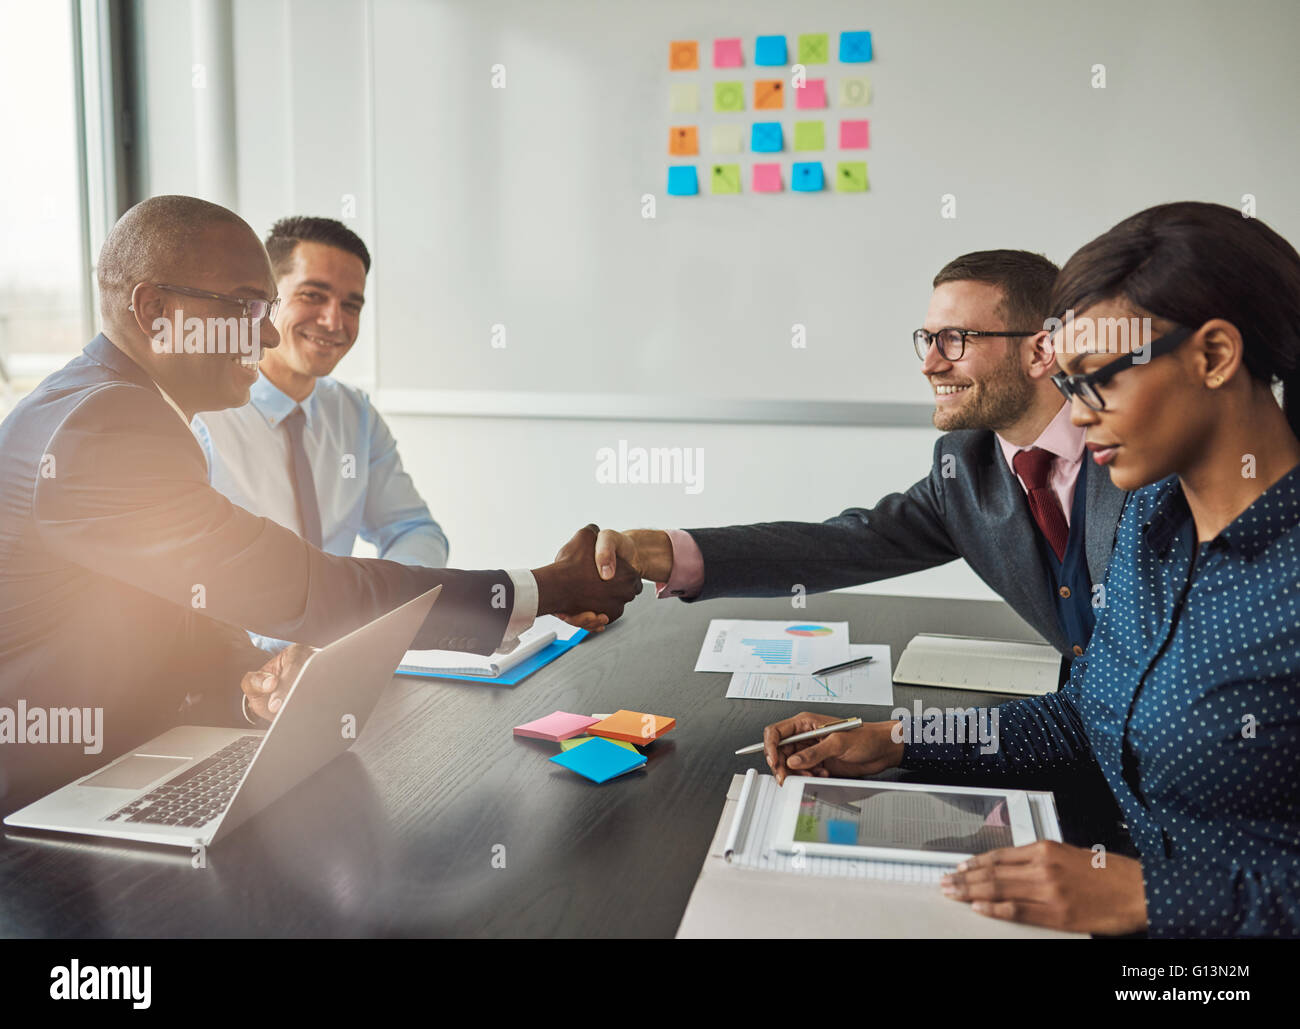 Multiracial team concluding a business agreement reaching across the table to shake hands with pleased smiles with - Stock Image